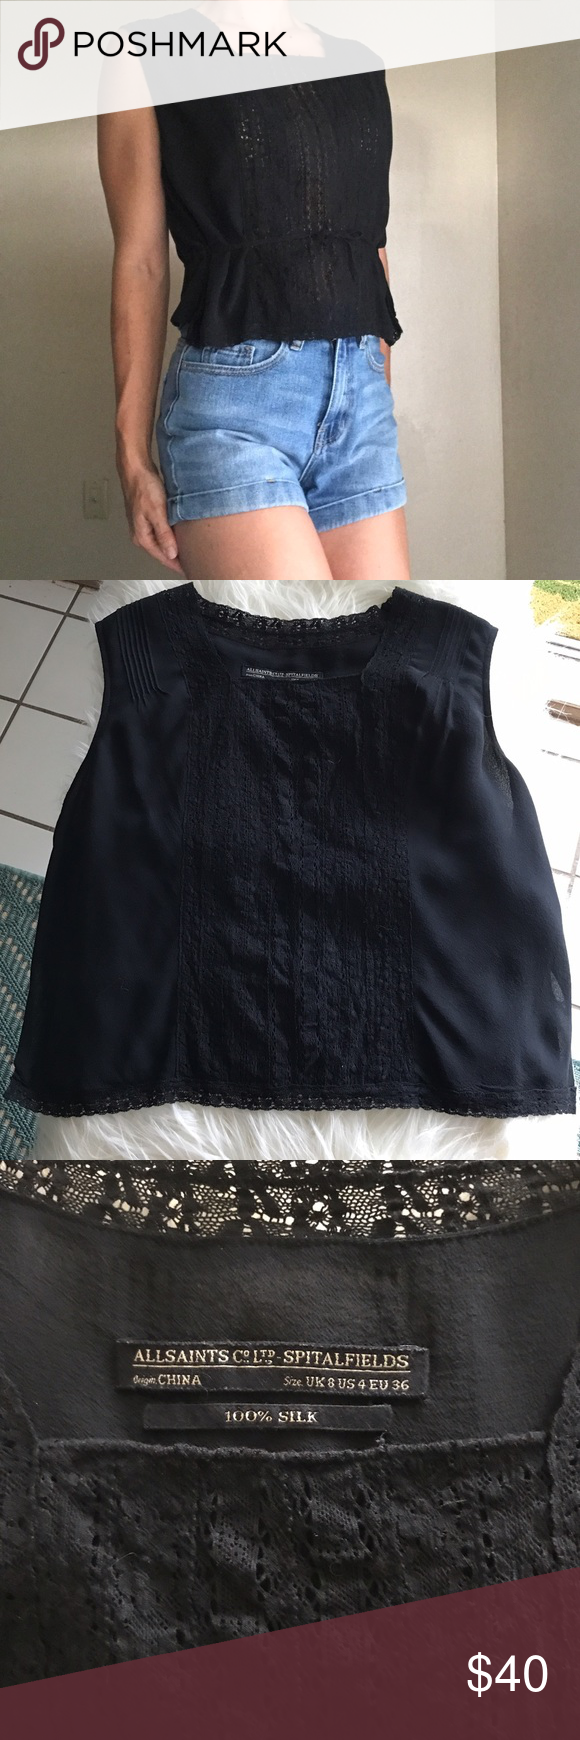 All Saints Silk Top All Saints Cropped Silk Top  • Black with lace & tie front detailing. Beautiful stitch details along shoulders as well • Fits true to size small, no stretch. Tag states the size is U.K. 8 US 4 and EU 36 • Excellent condition, no signs of wear  No trades please. Reasonable offers considered. Bundle discount: 15% off 2 or more items ✨ All Saints Tops Crop Tops